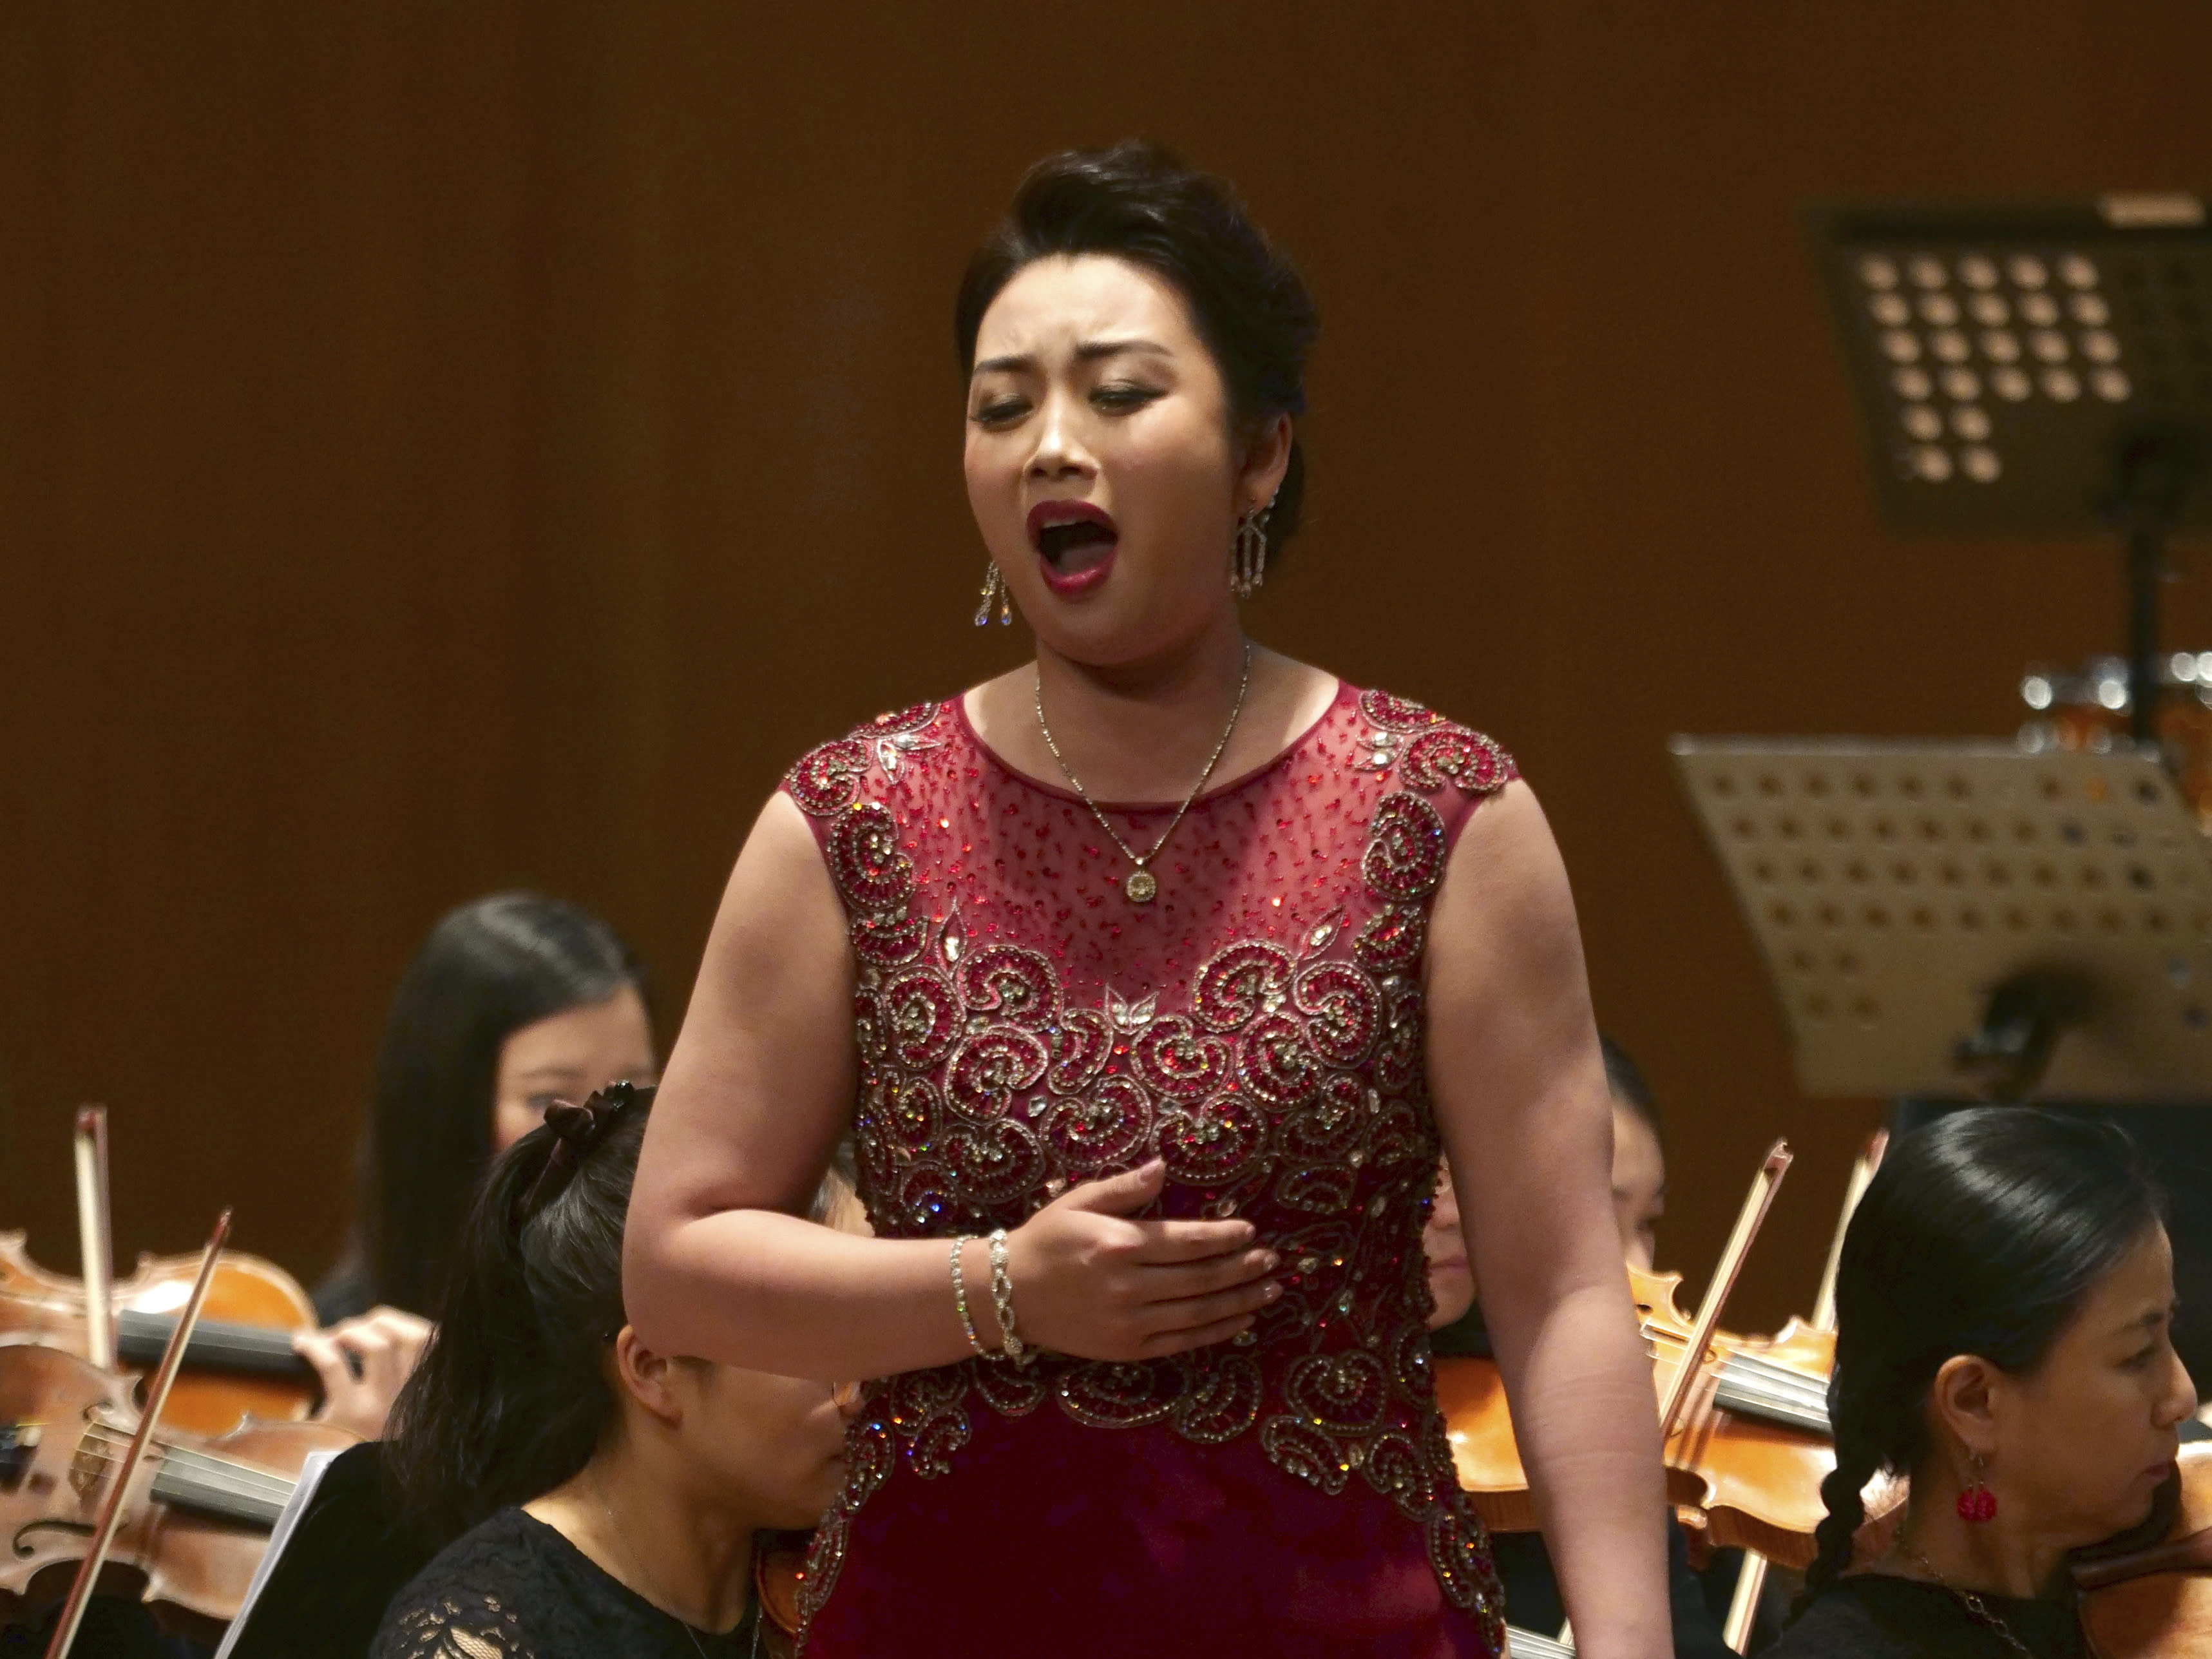 North Korean soprano singer Kim Song Mi performs at the Shanghai Oriental Arts Center in Shanghai on Sunday, May 12, 2019. South Korean Violinist Won Hyung Joon and his North Korean soprano partner, Kim perform in a rare joint performance they hope would help bring the divided Koreas closer together via music. Their performance comes three days after North Korea fired two suspected short-range missiles in the second such weapons test in five days.(AP Photo/Dake Kang)